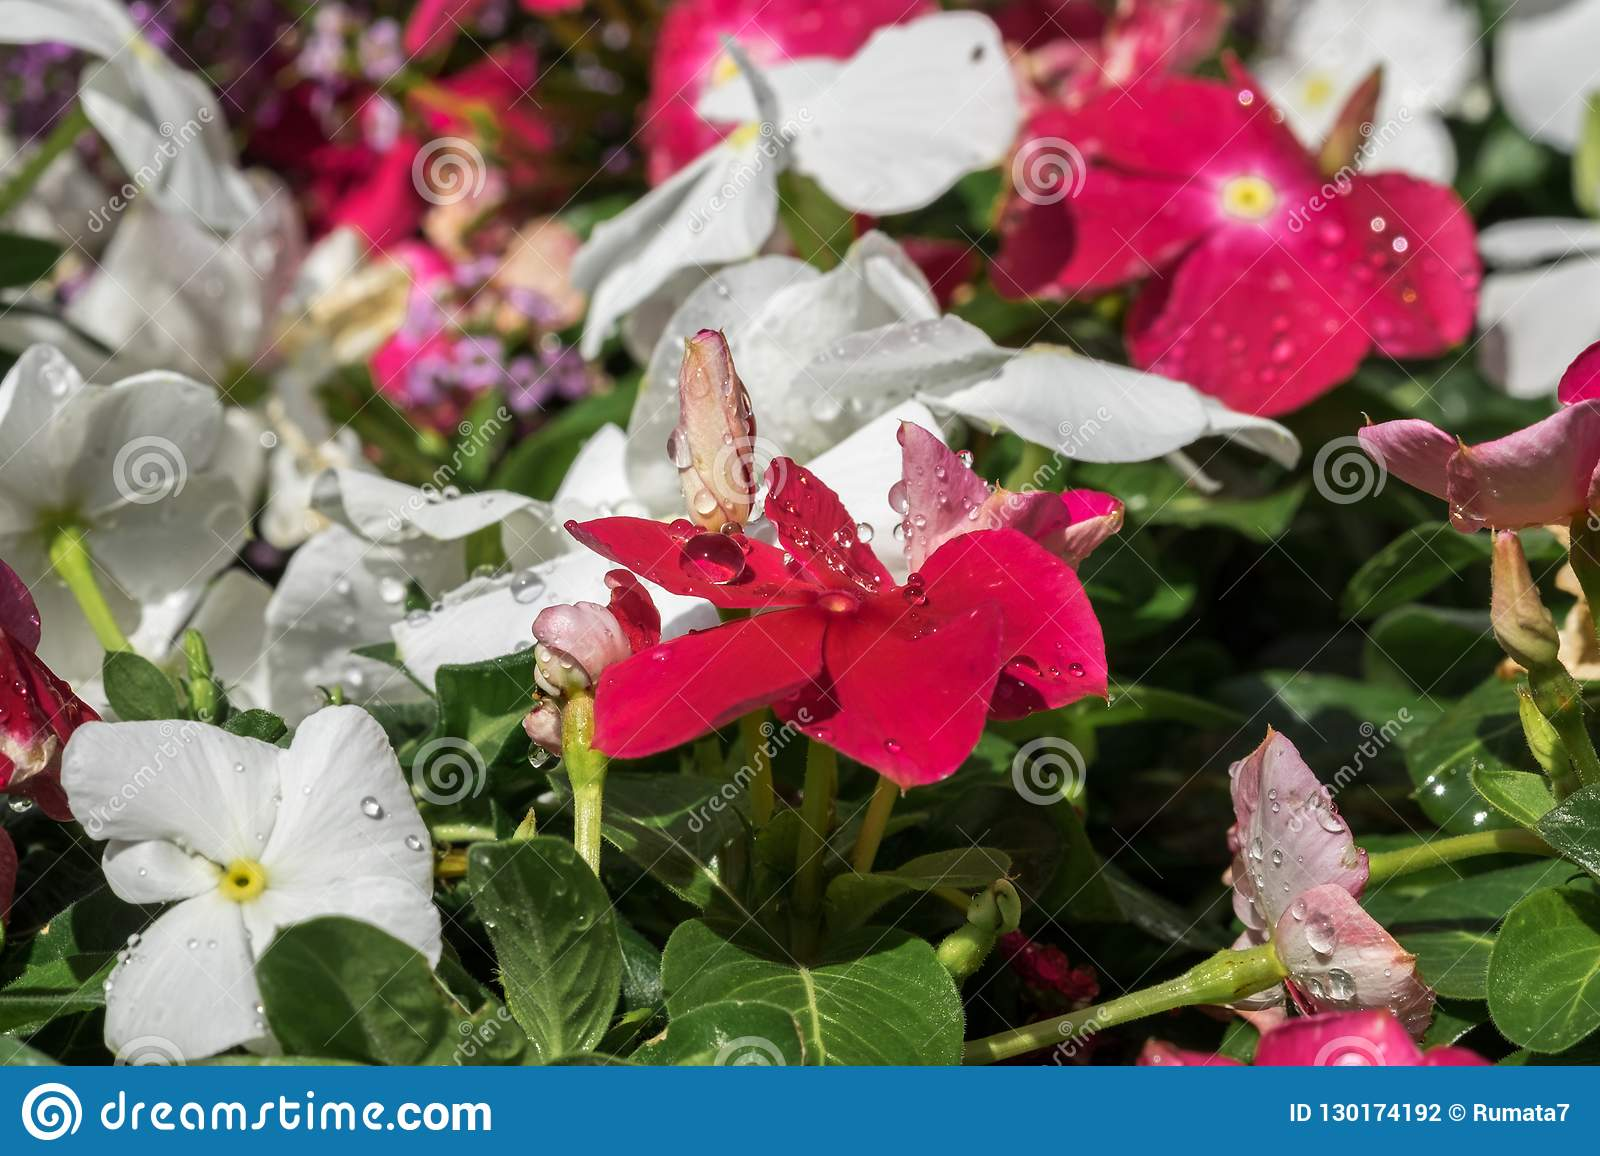 water drops on vinca flowers at greenhouse stock photo image of